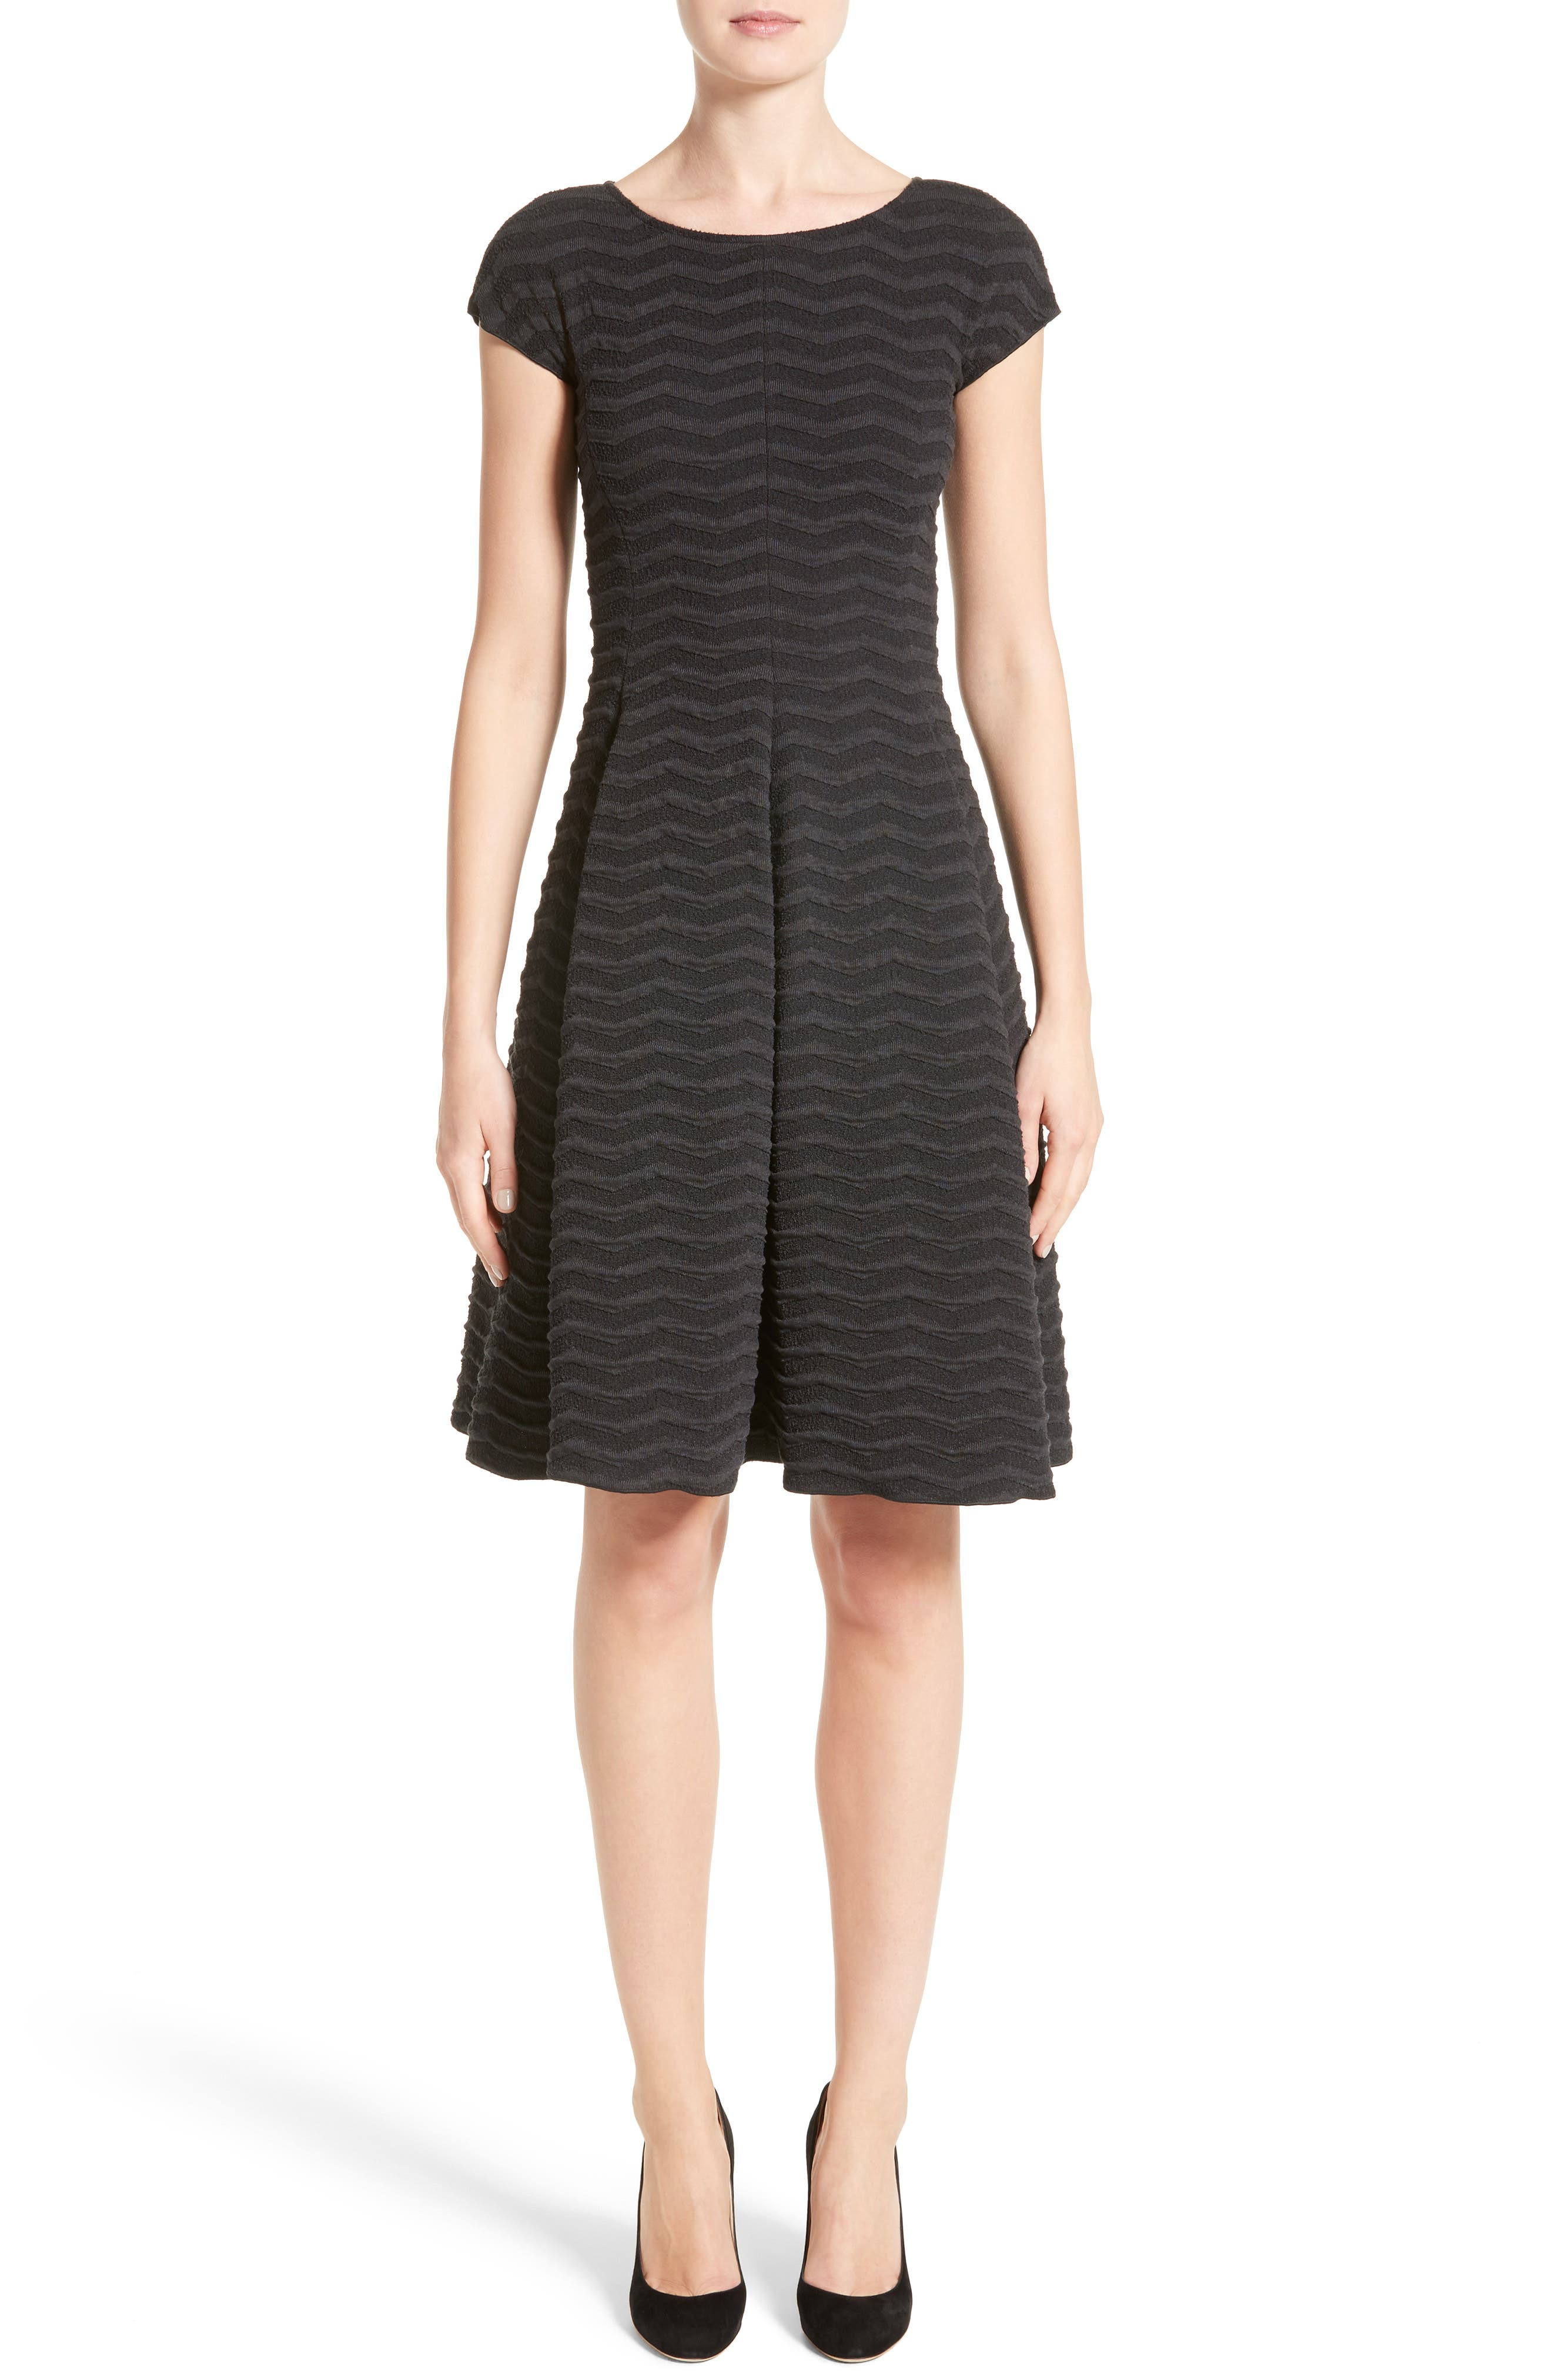 Alternate Image 1 Selected - Armani Collezioni Embossed Jacquard Jersey A-Line Dress